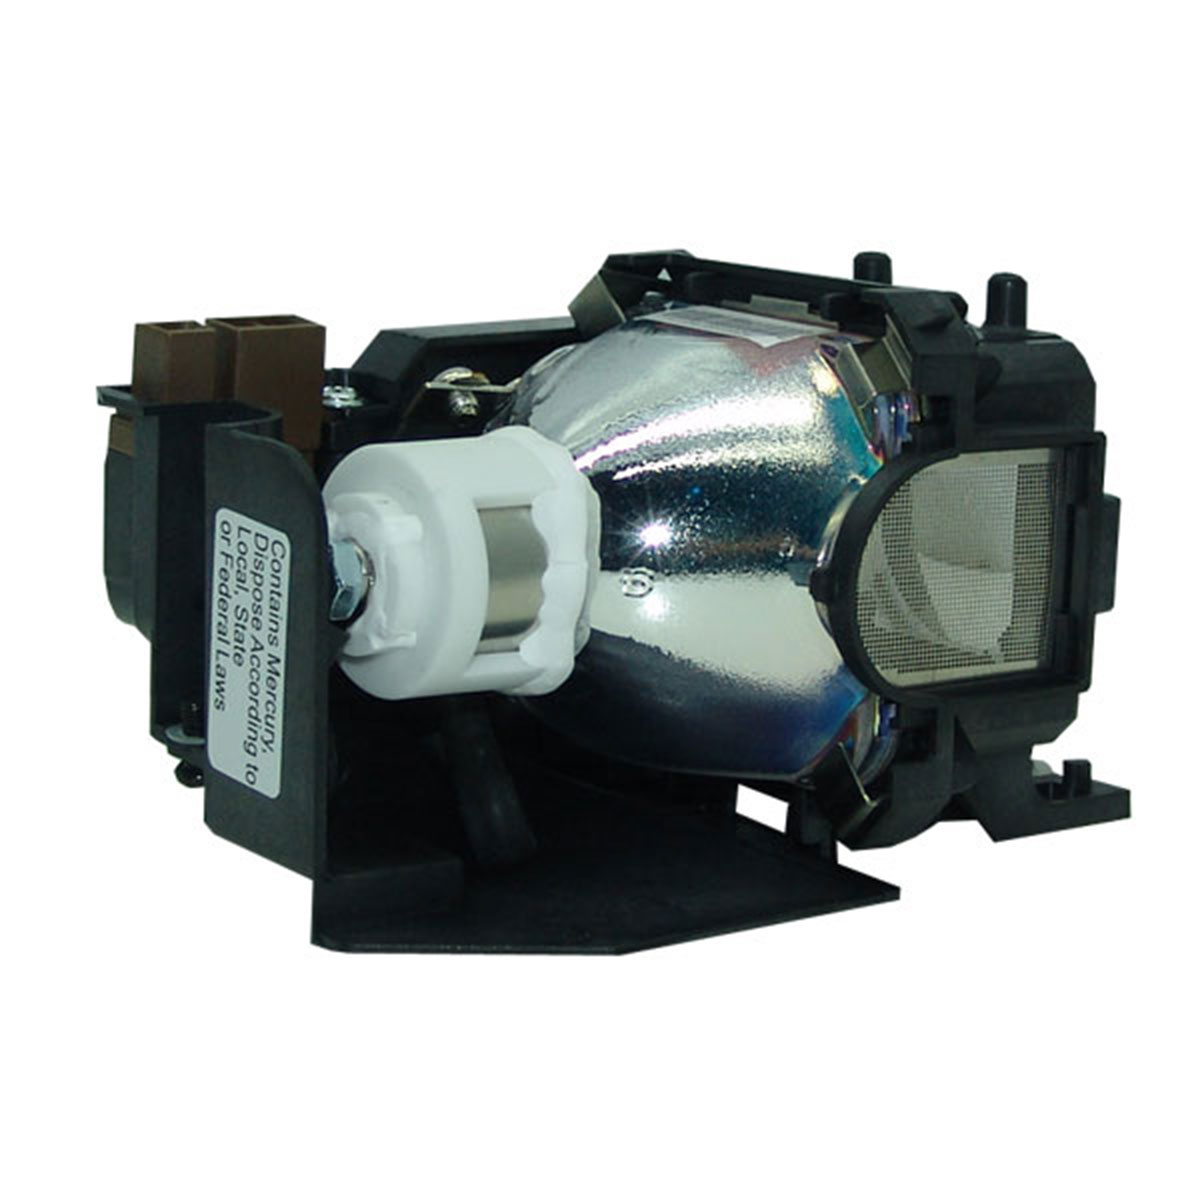 Lutema Economy for NEC VT480 Projector Lamp with Housing - image 3 de 5